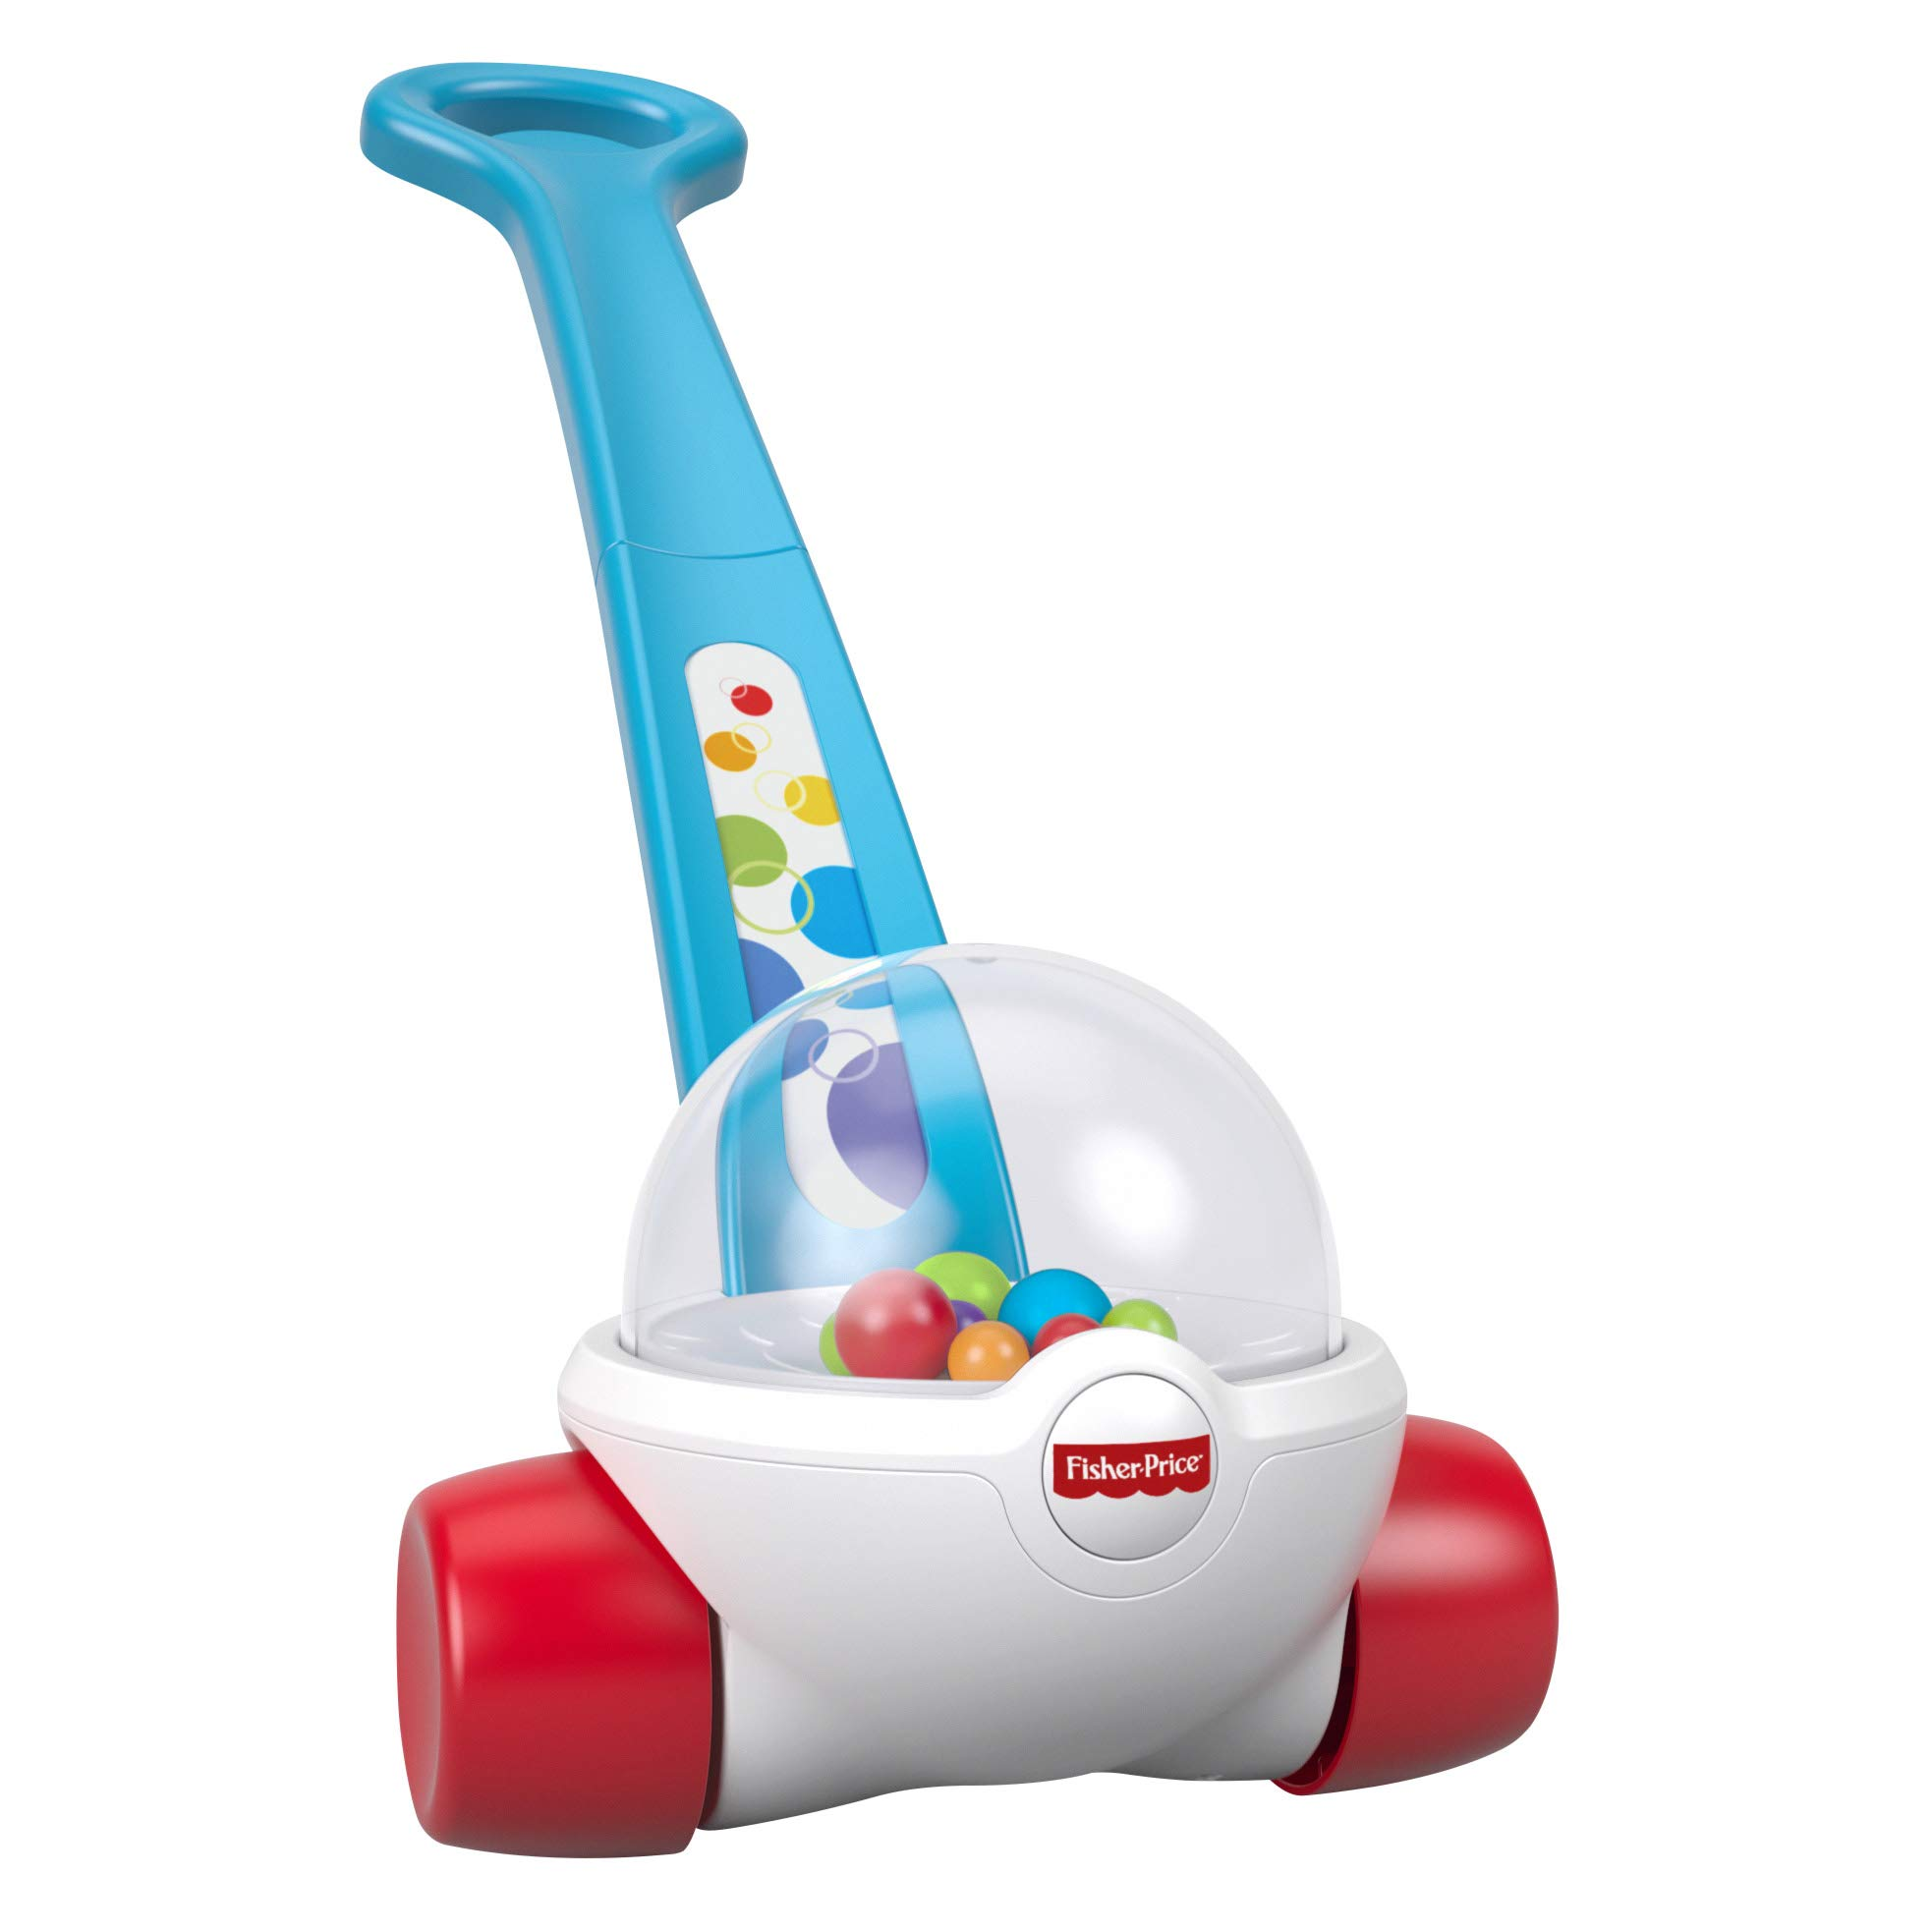 Fisher-Price Corn Popper, Toddler Push Along Toy with Ball-popping Sounds and Action, Toy for 1 Year Old